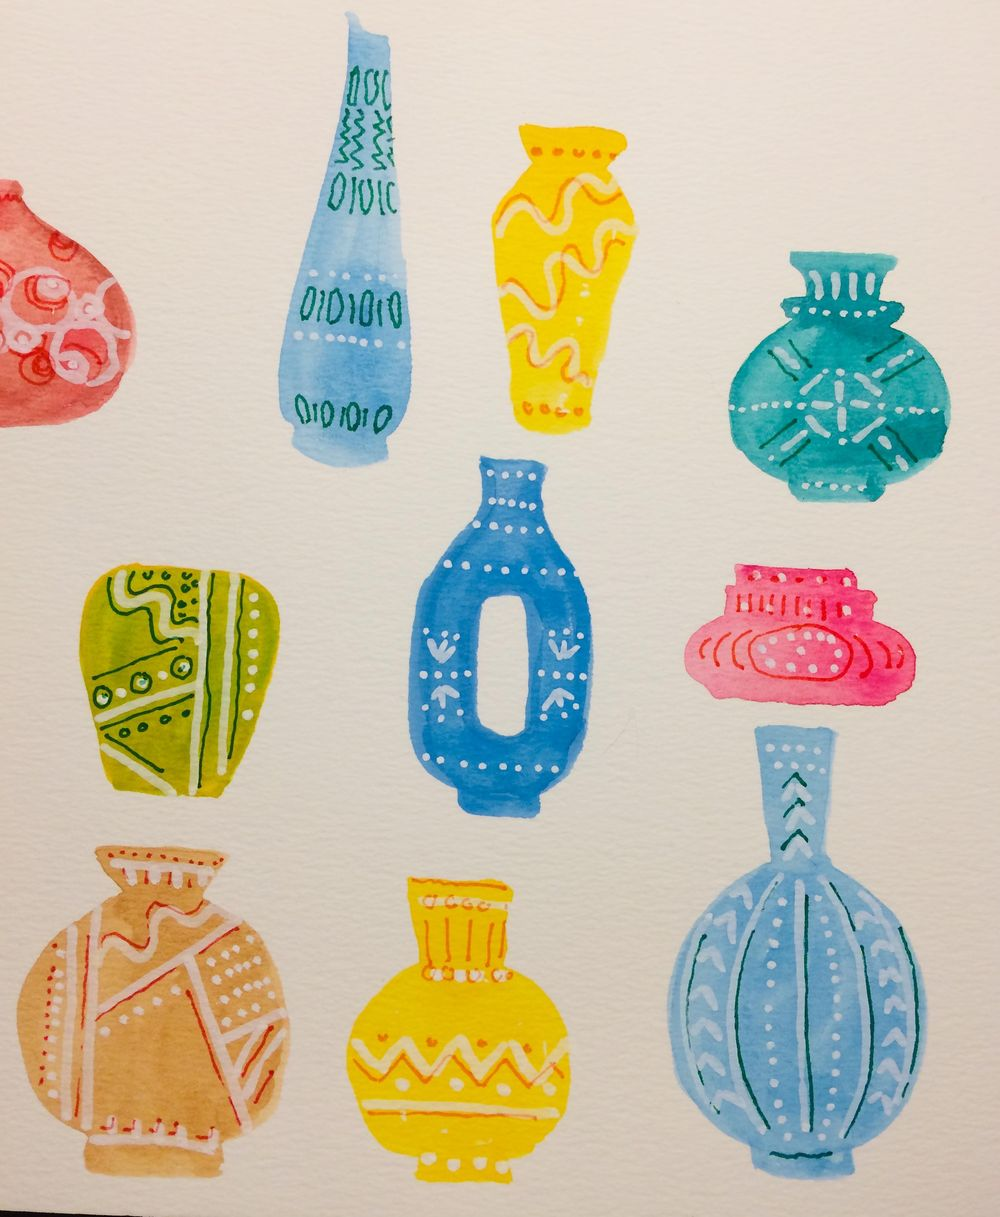 Vases with watercolour and pen - image 2 - student project